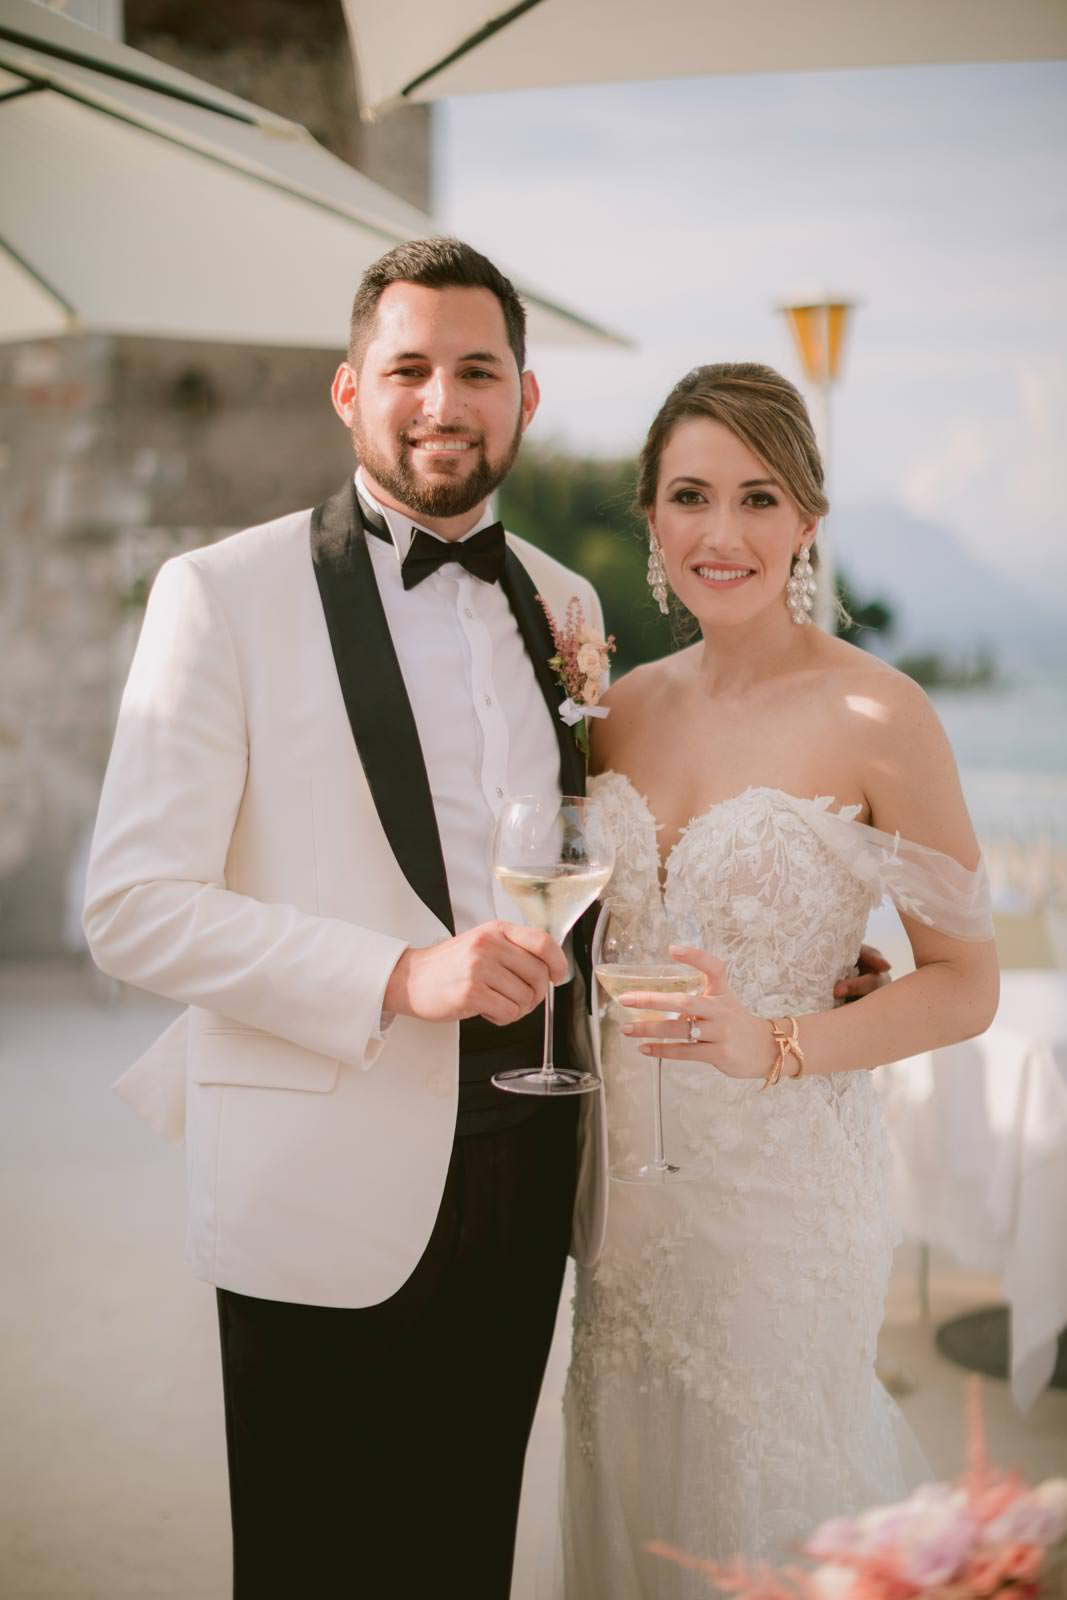 Bthe first toast as husband and wife